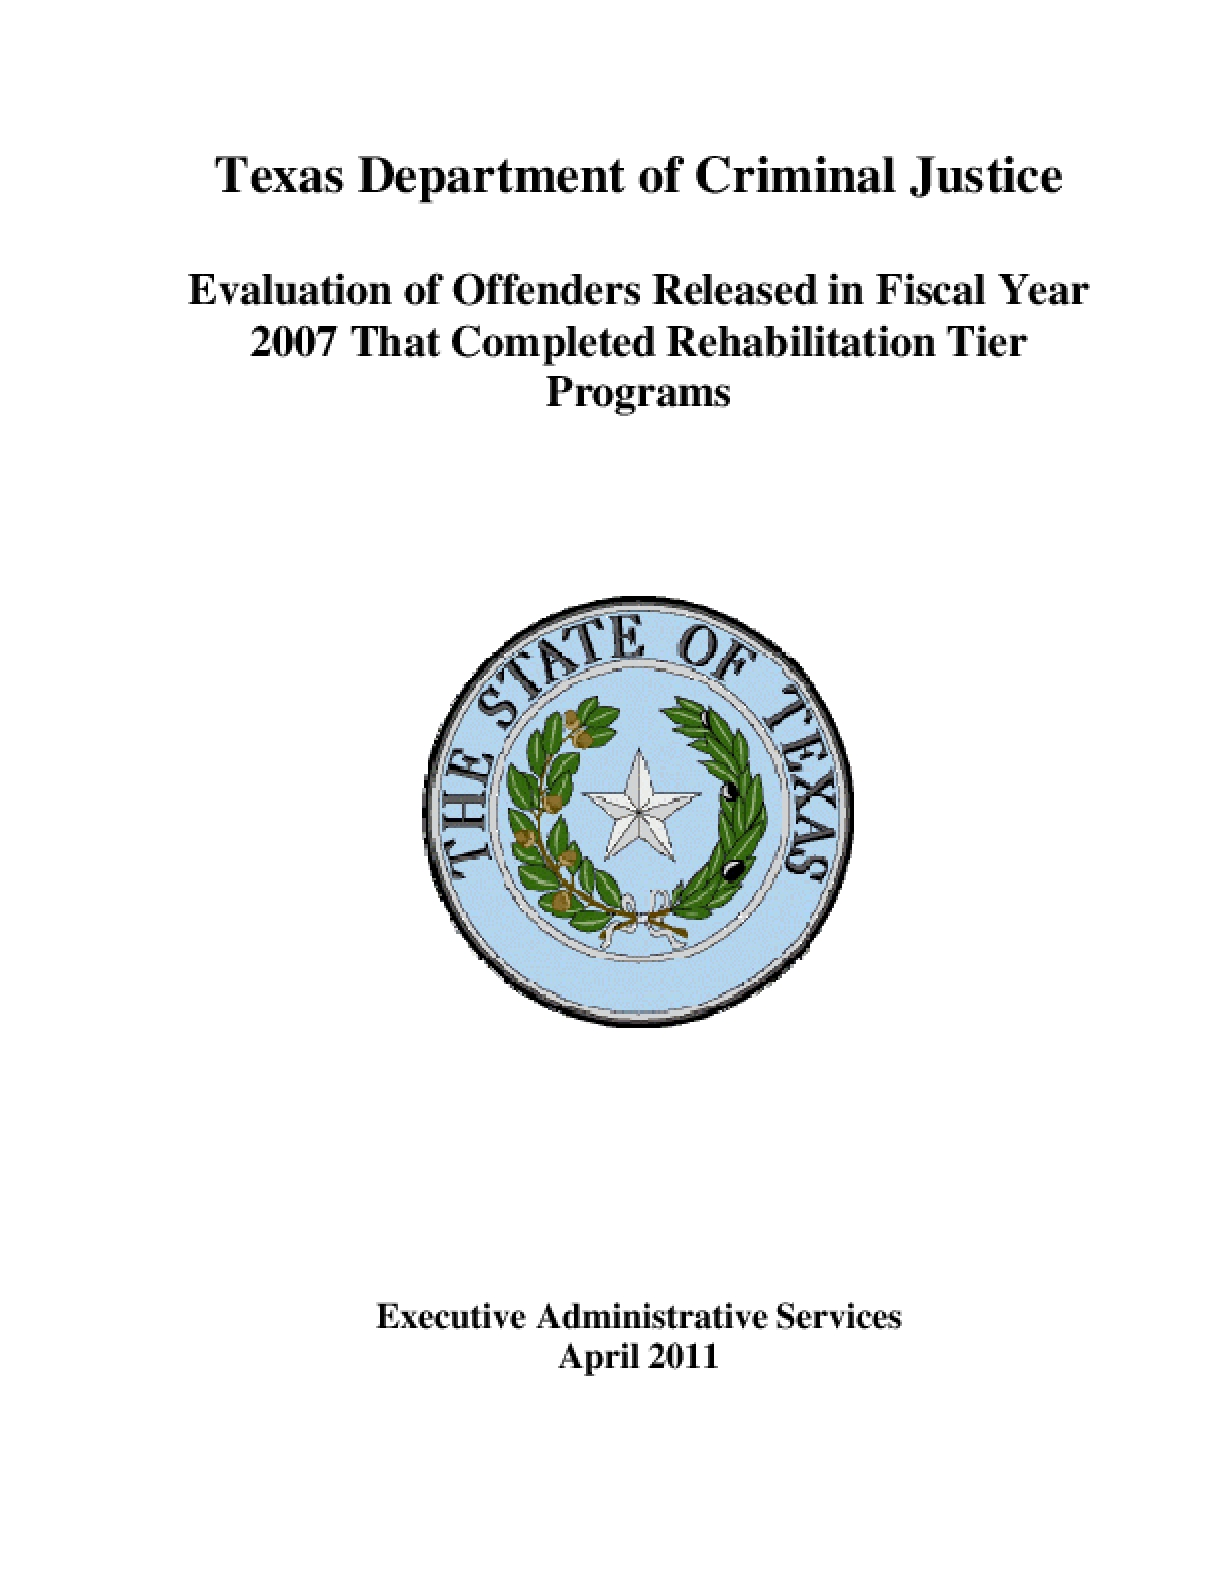 Evaluation of Offenders Released in Fiscal Year 2007 That Completed Rehabilitation Tier Programs